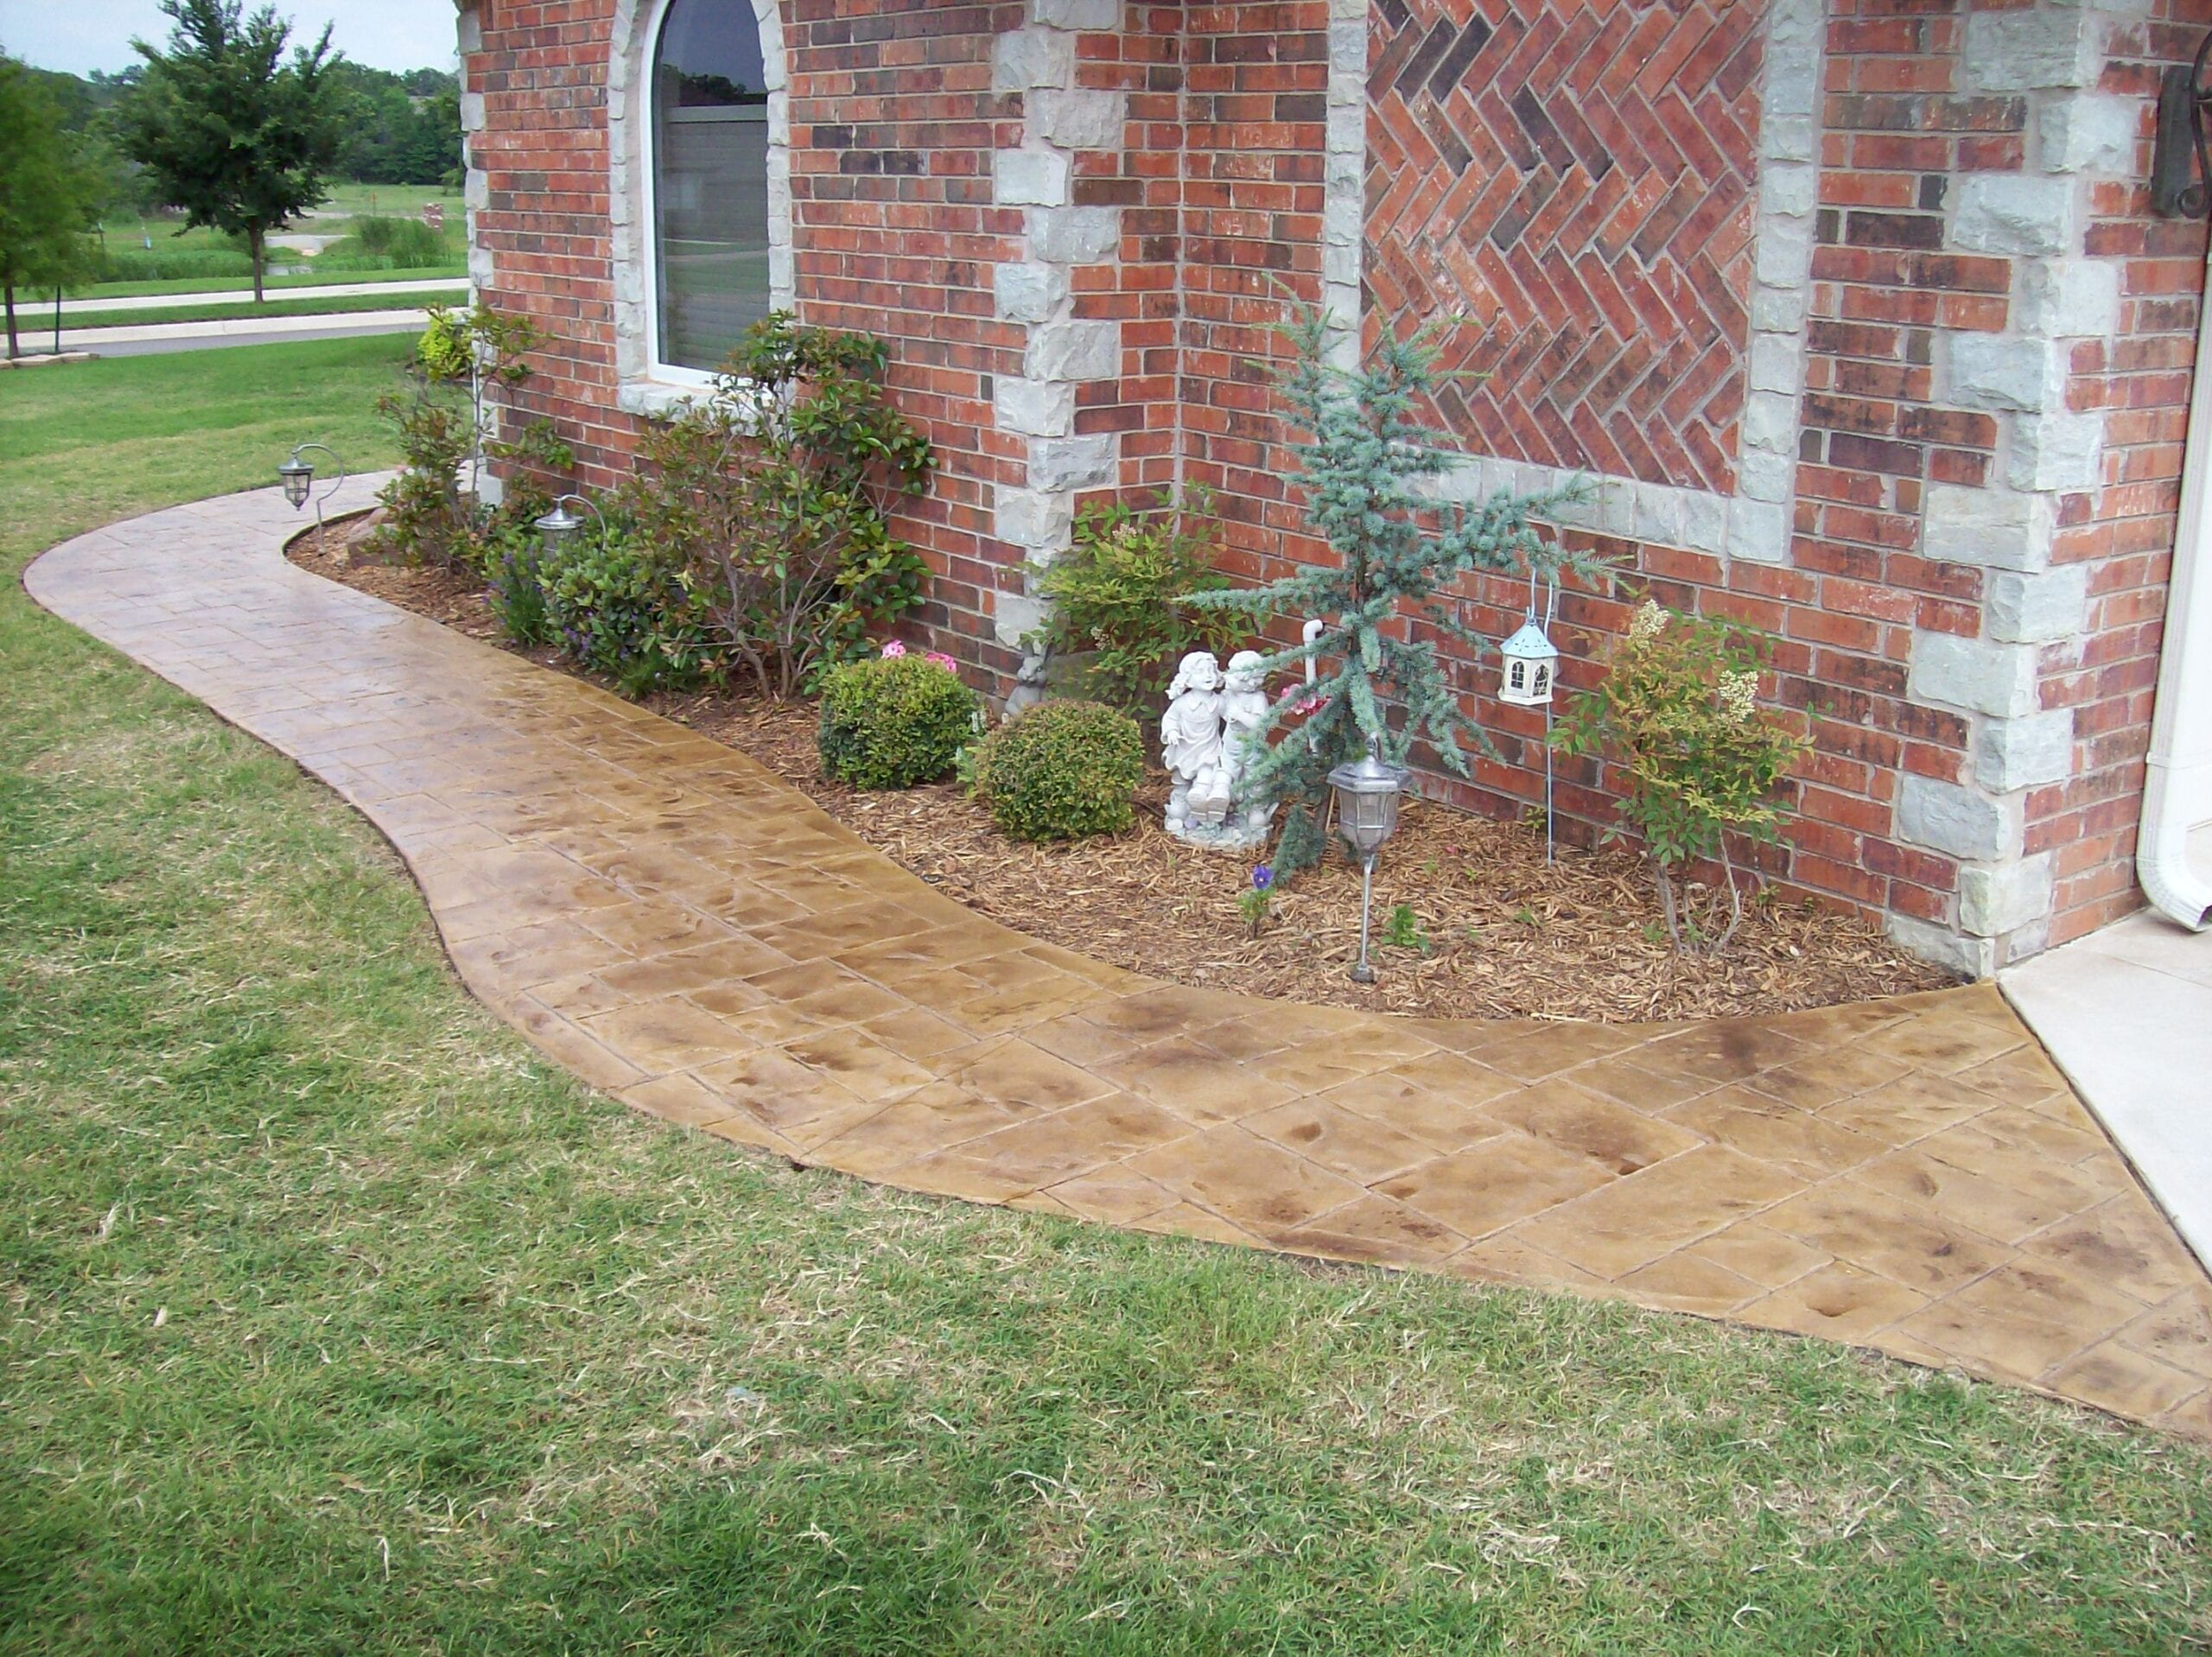 Design by colorant: Renew Outdoor Colored Concrete with Colored Tinted Sealer